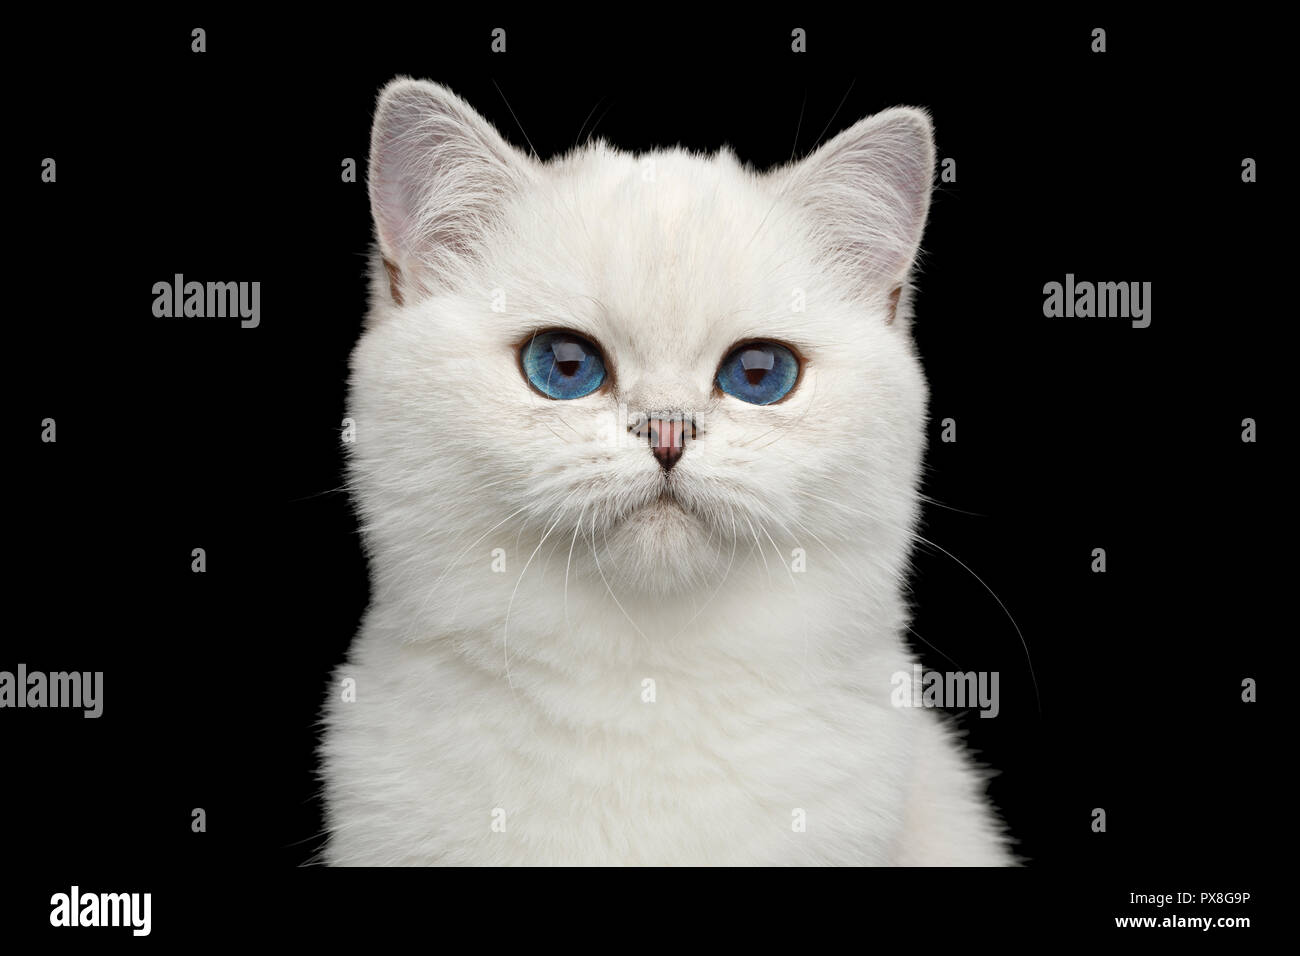 Portrait of British White Cat with adorable blue eyes on Isolated Black Background, front view - Stock Image